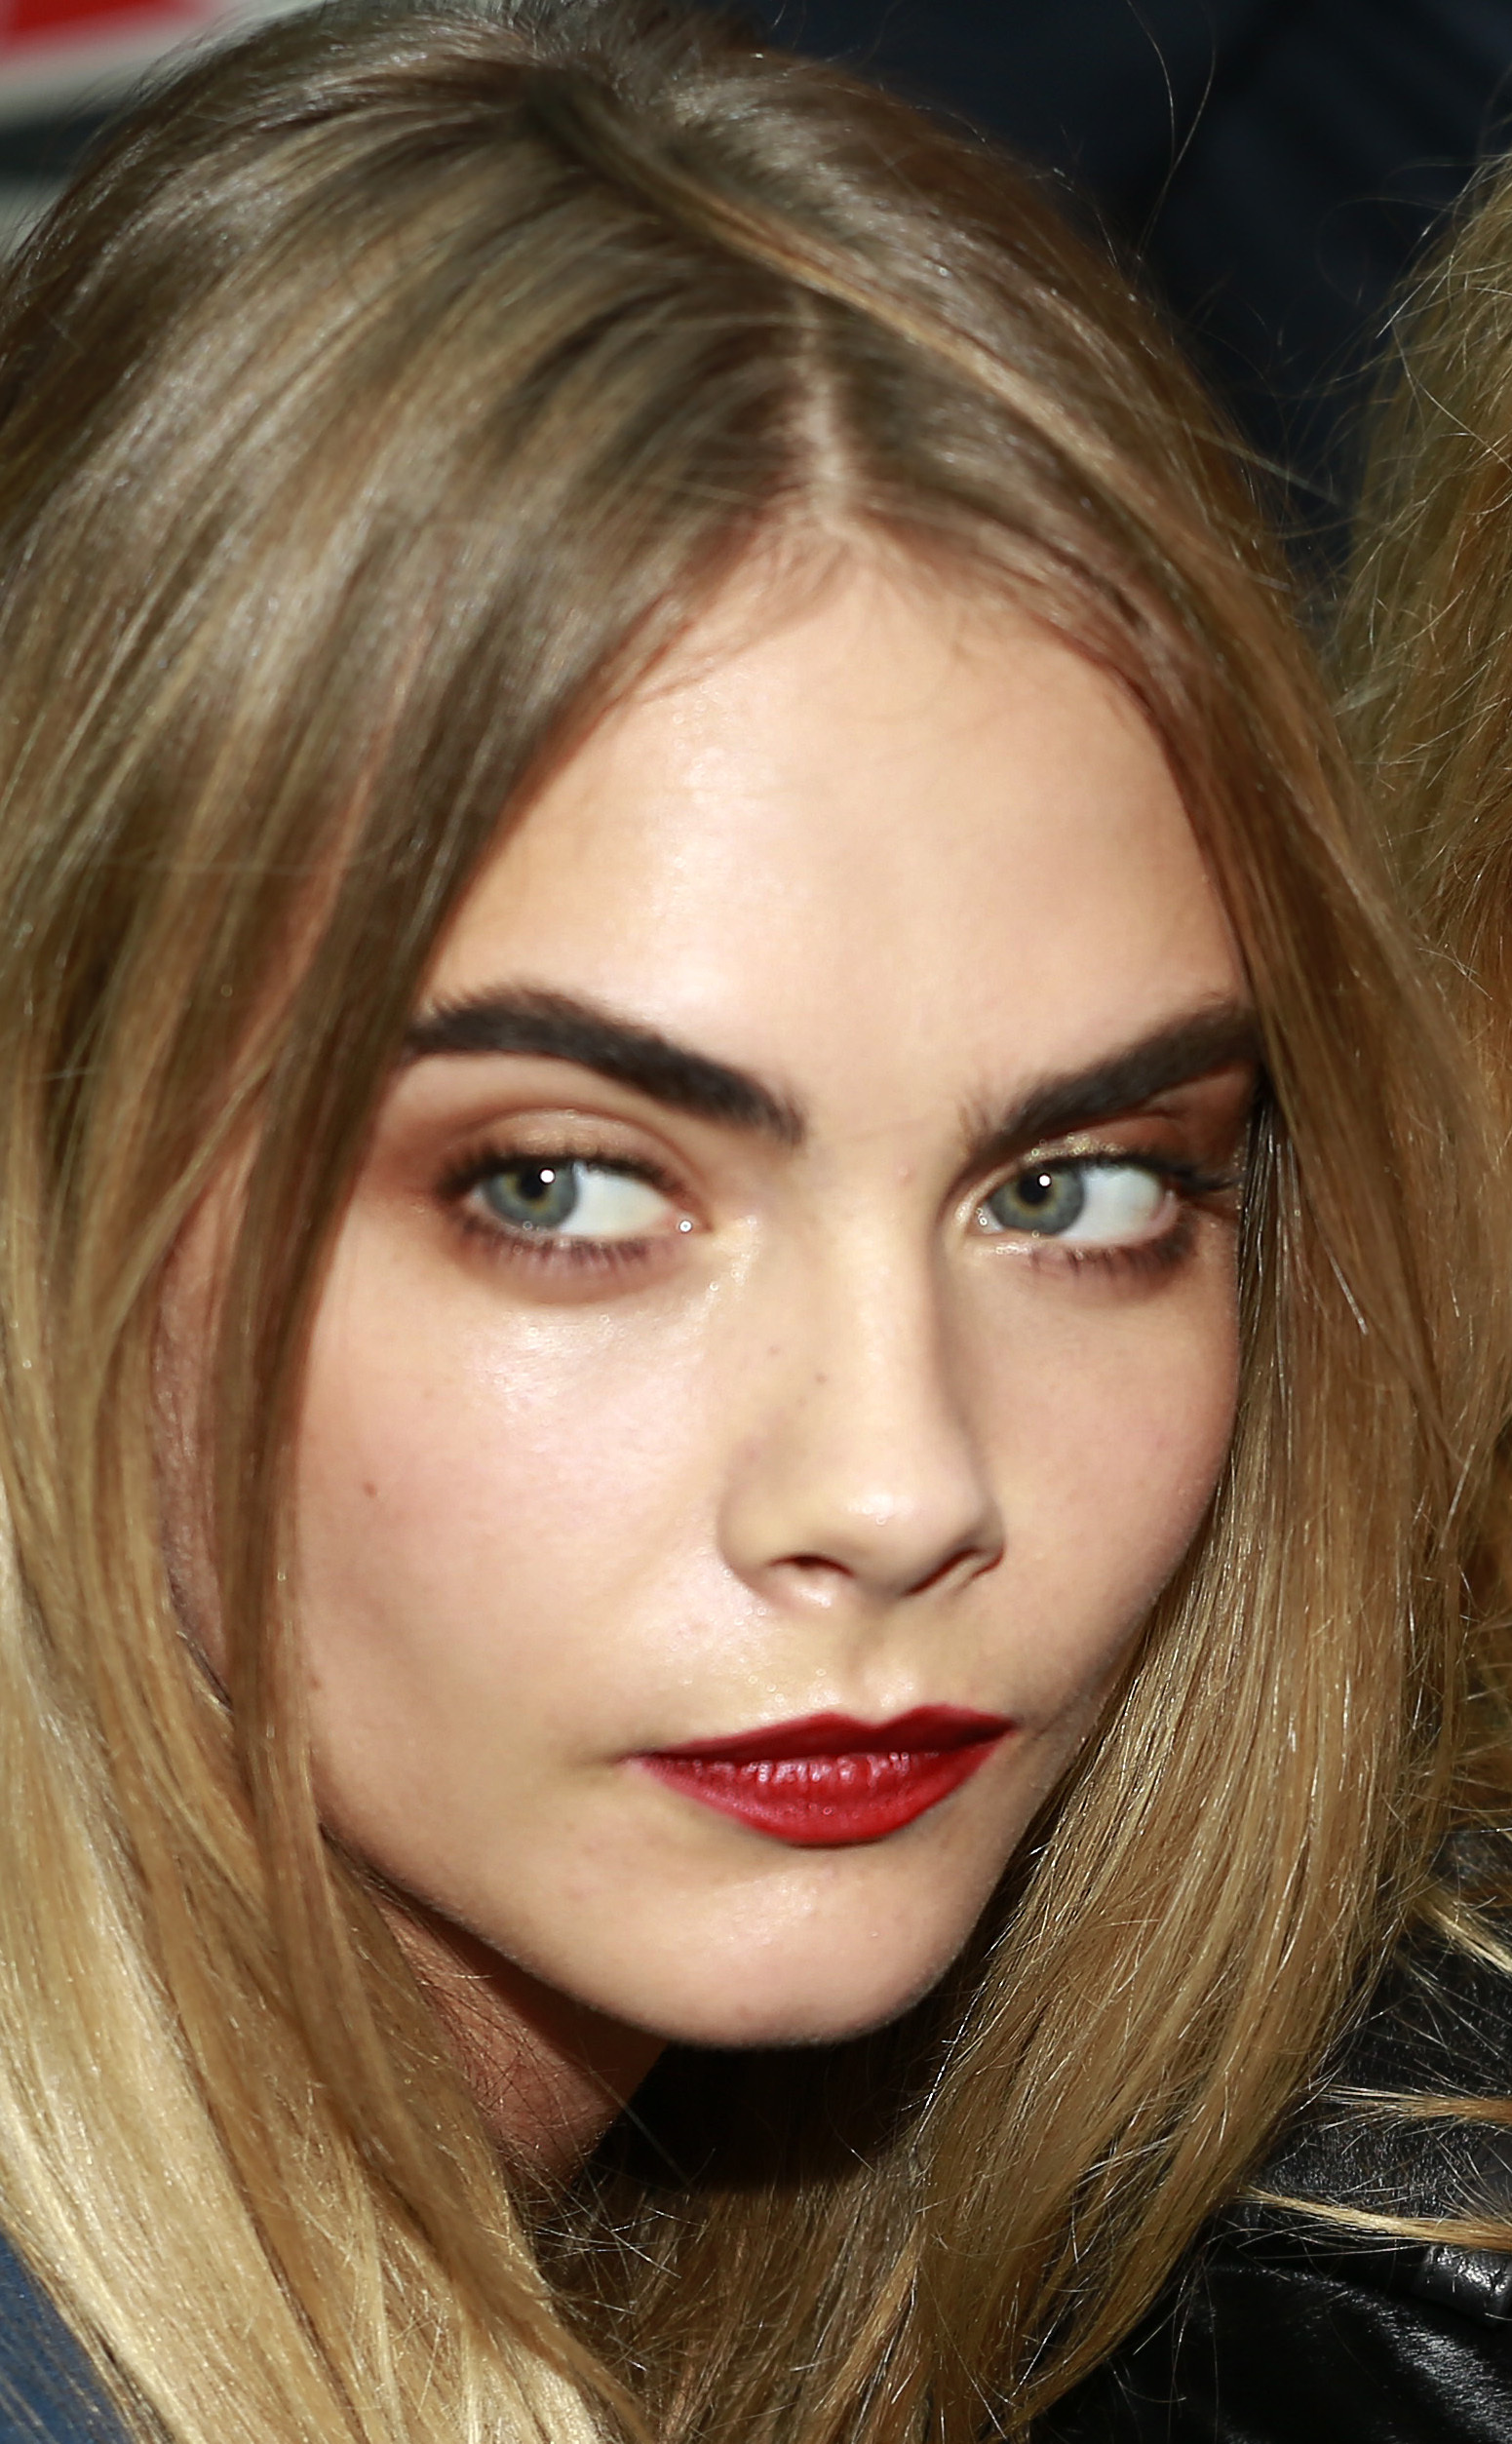 Cara Delevingne Alchetron The Free Social Encyclopedia